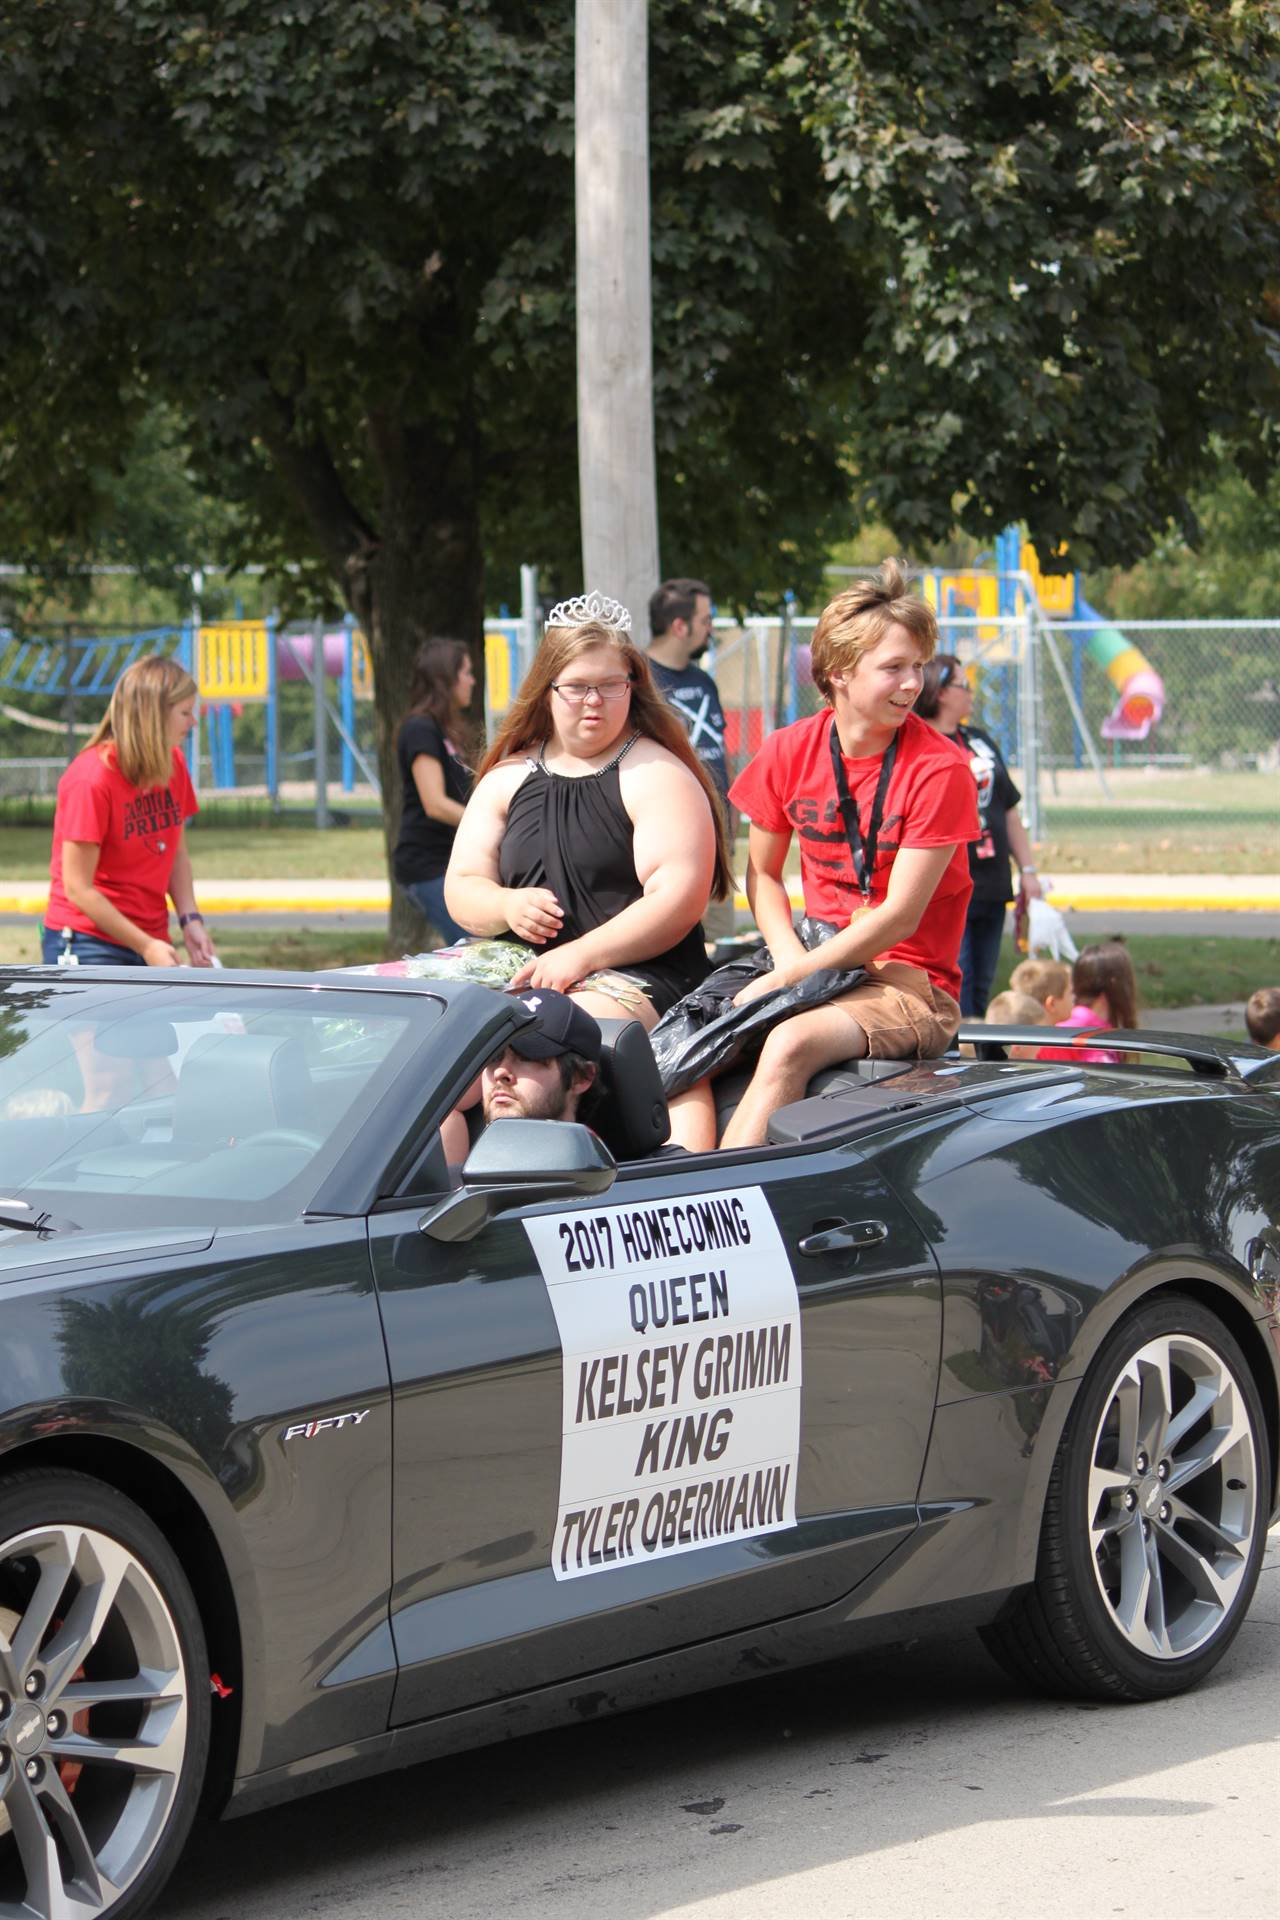 2017 Homecoming king and queen riding in a convertible for the homecoming parade